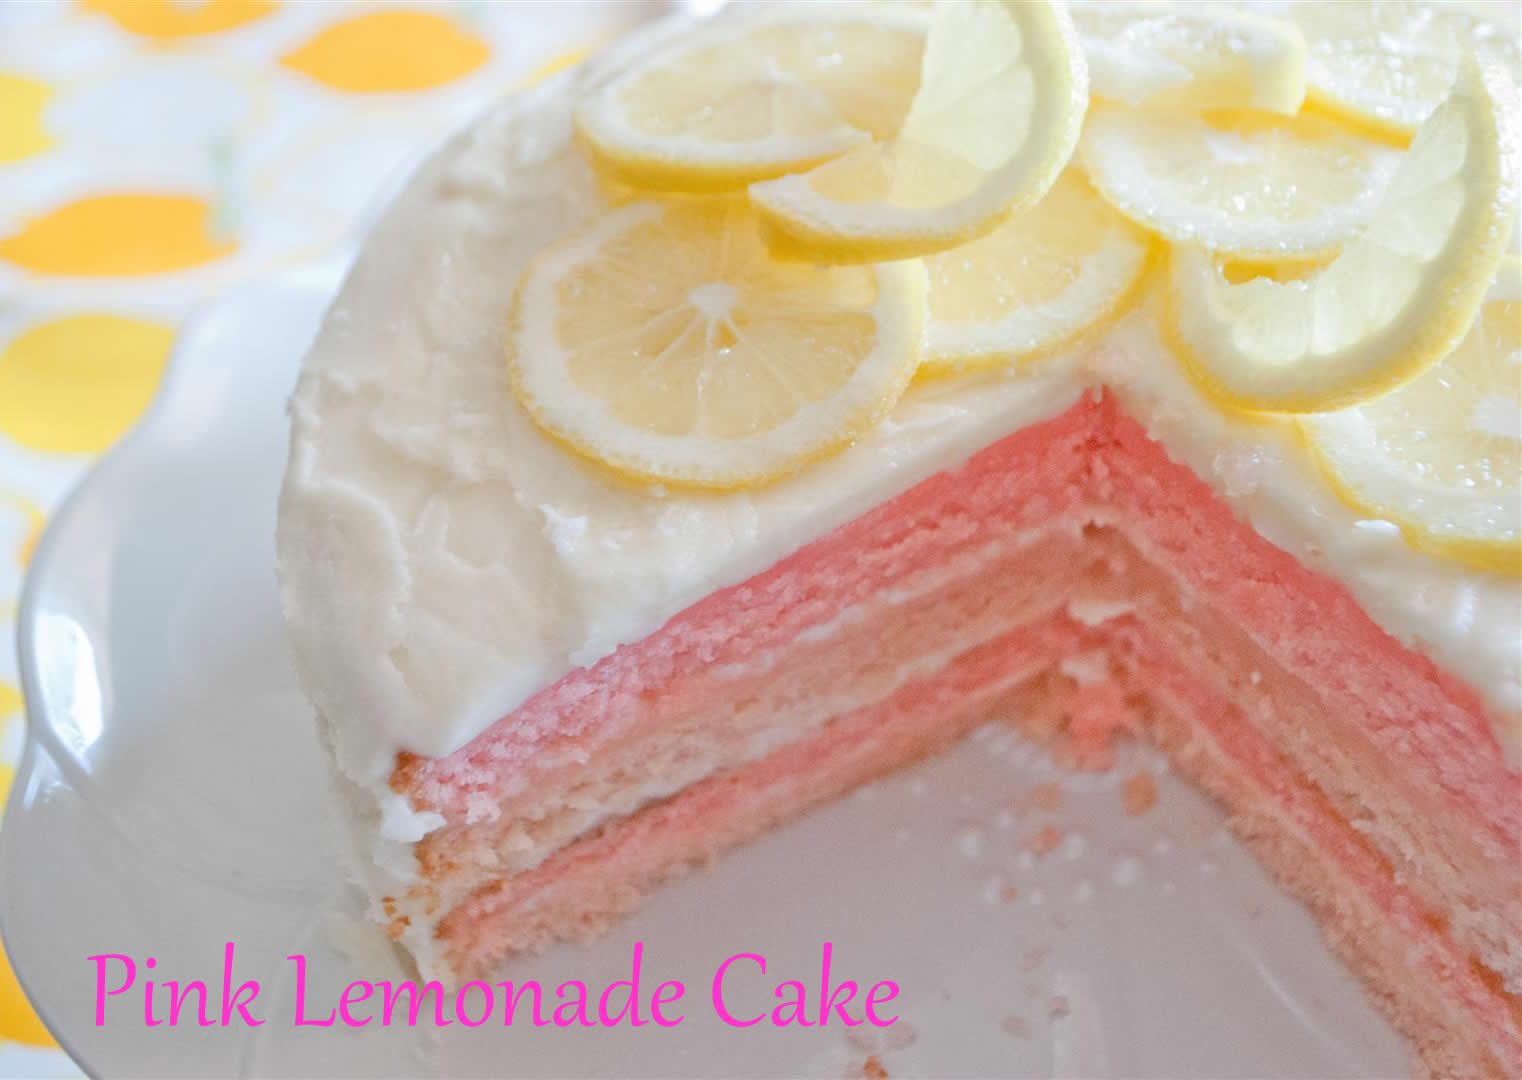 Pink Lemonade Cake and Cupcakes